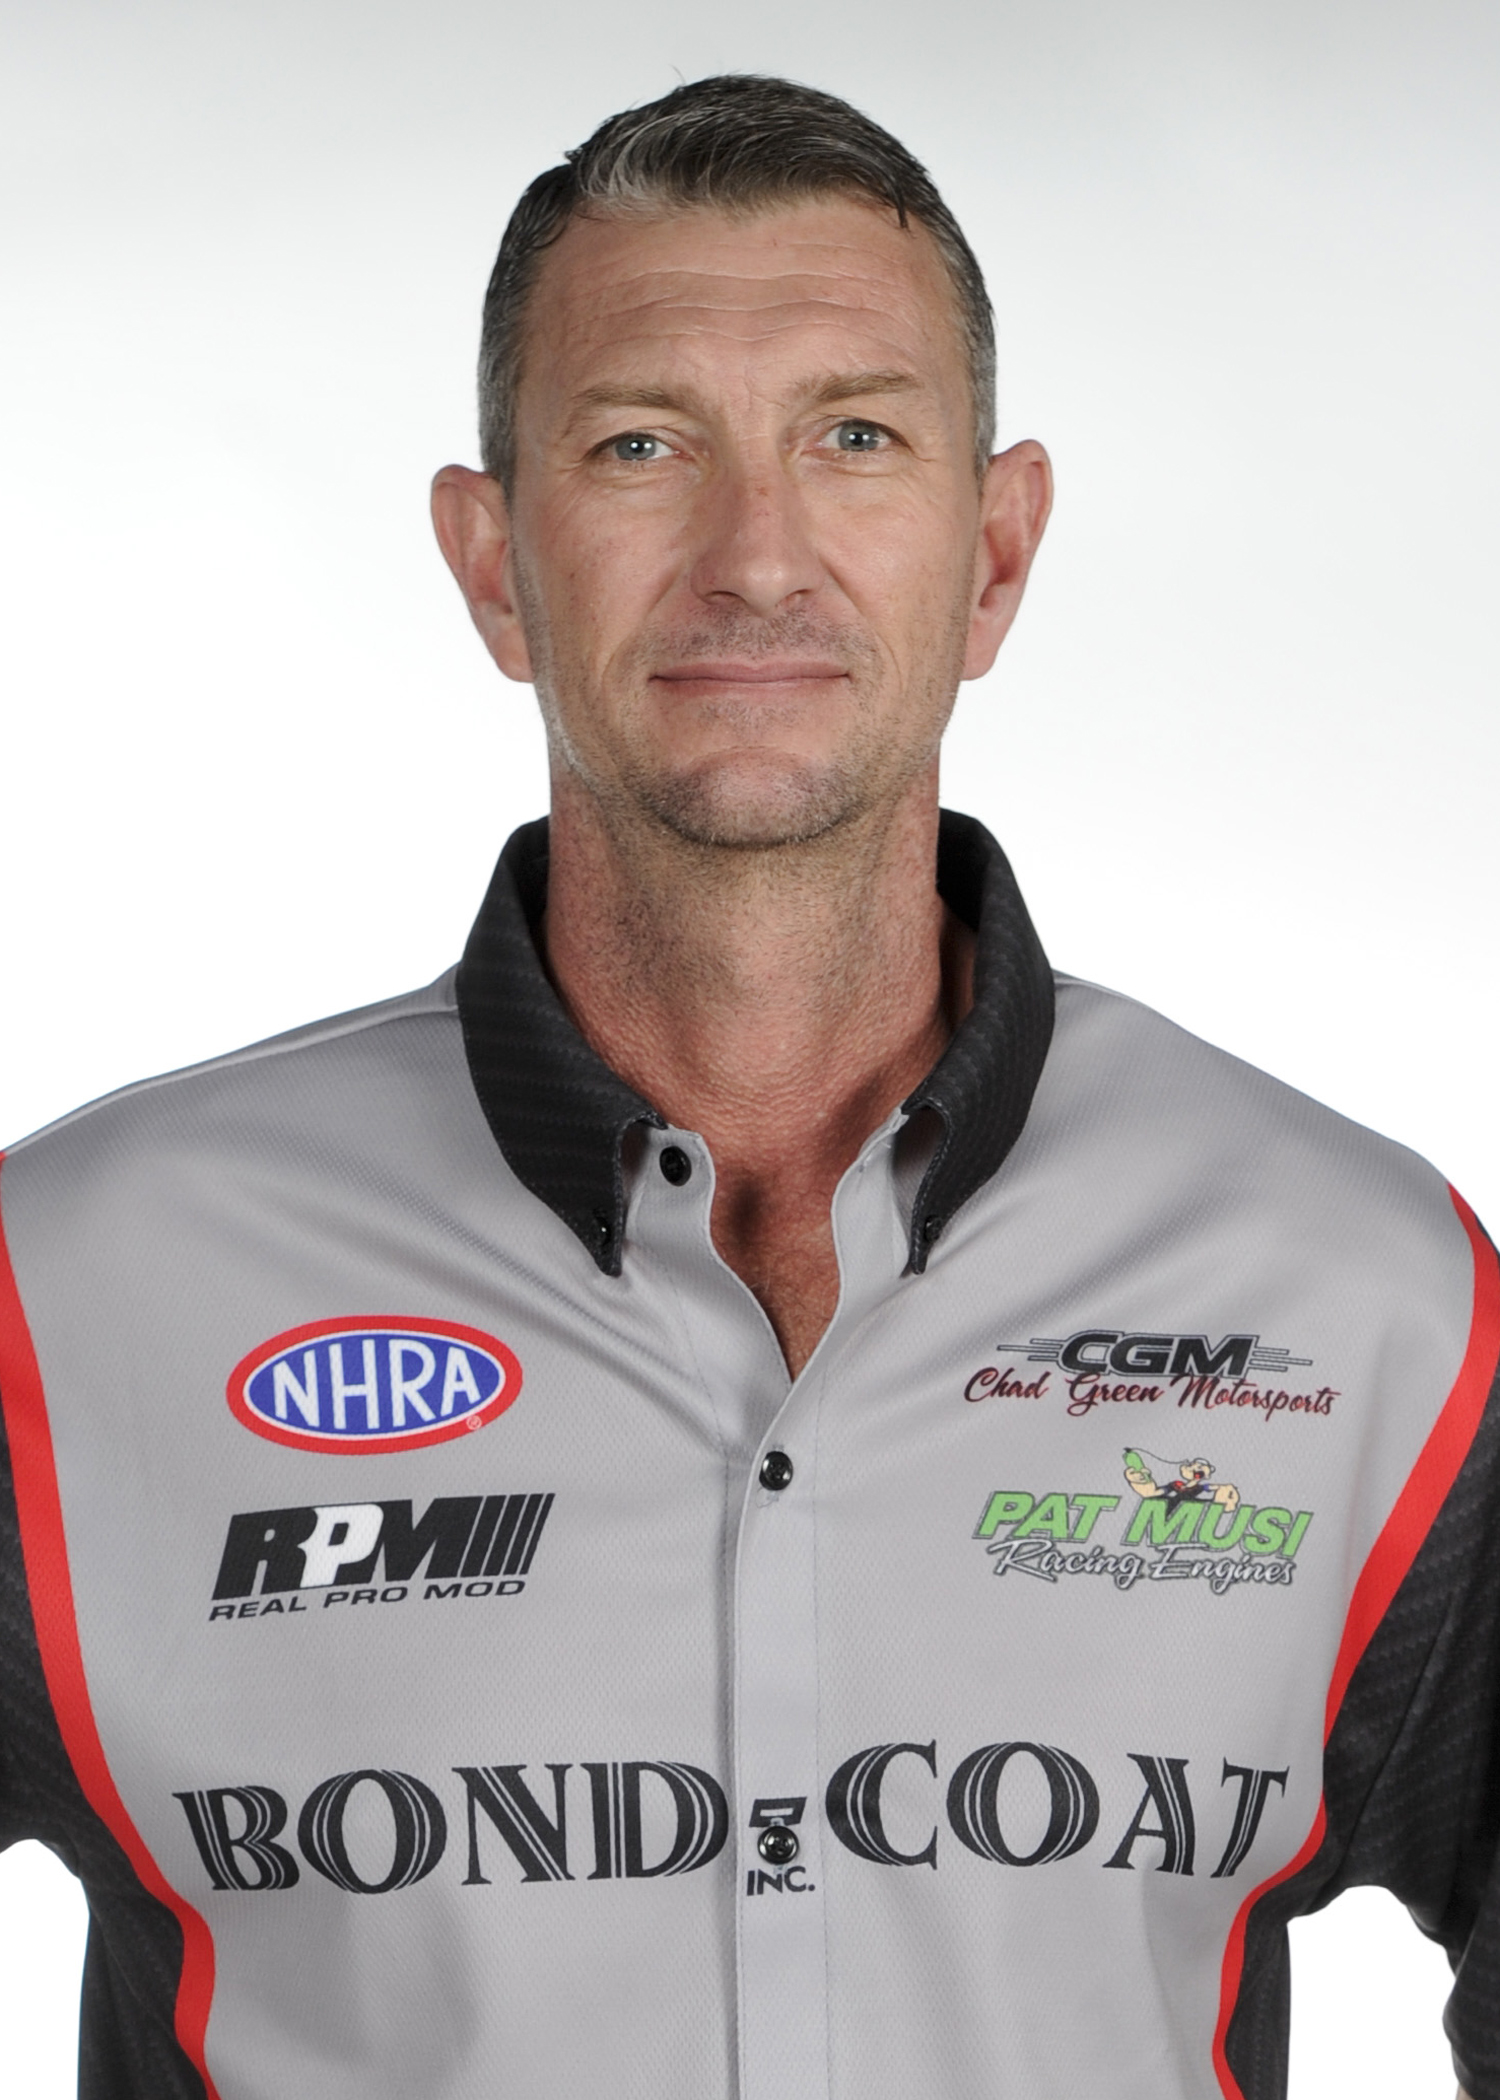 AAA Texas NHRA Fallnationals - Pro Mod - Chad Green